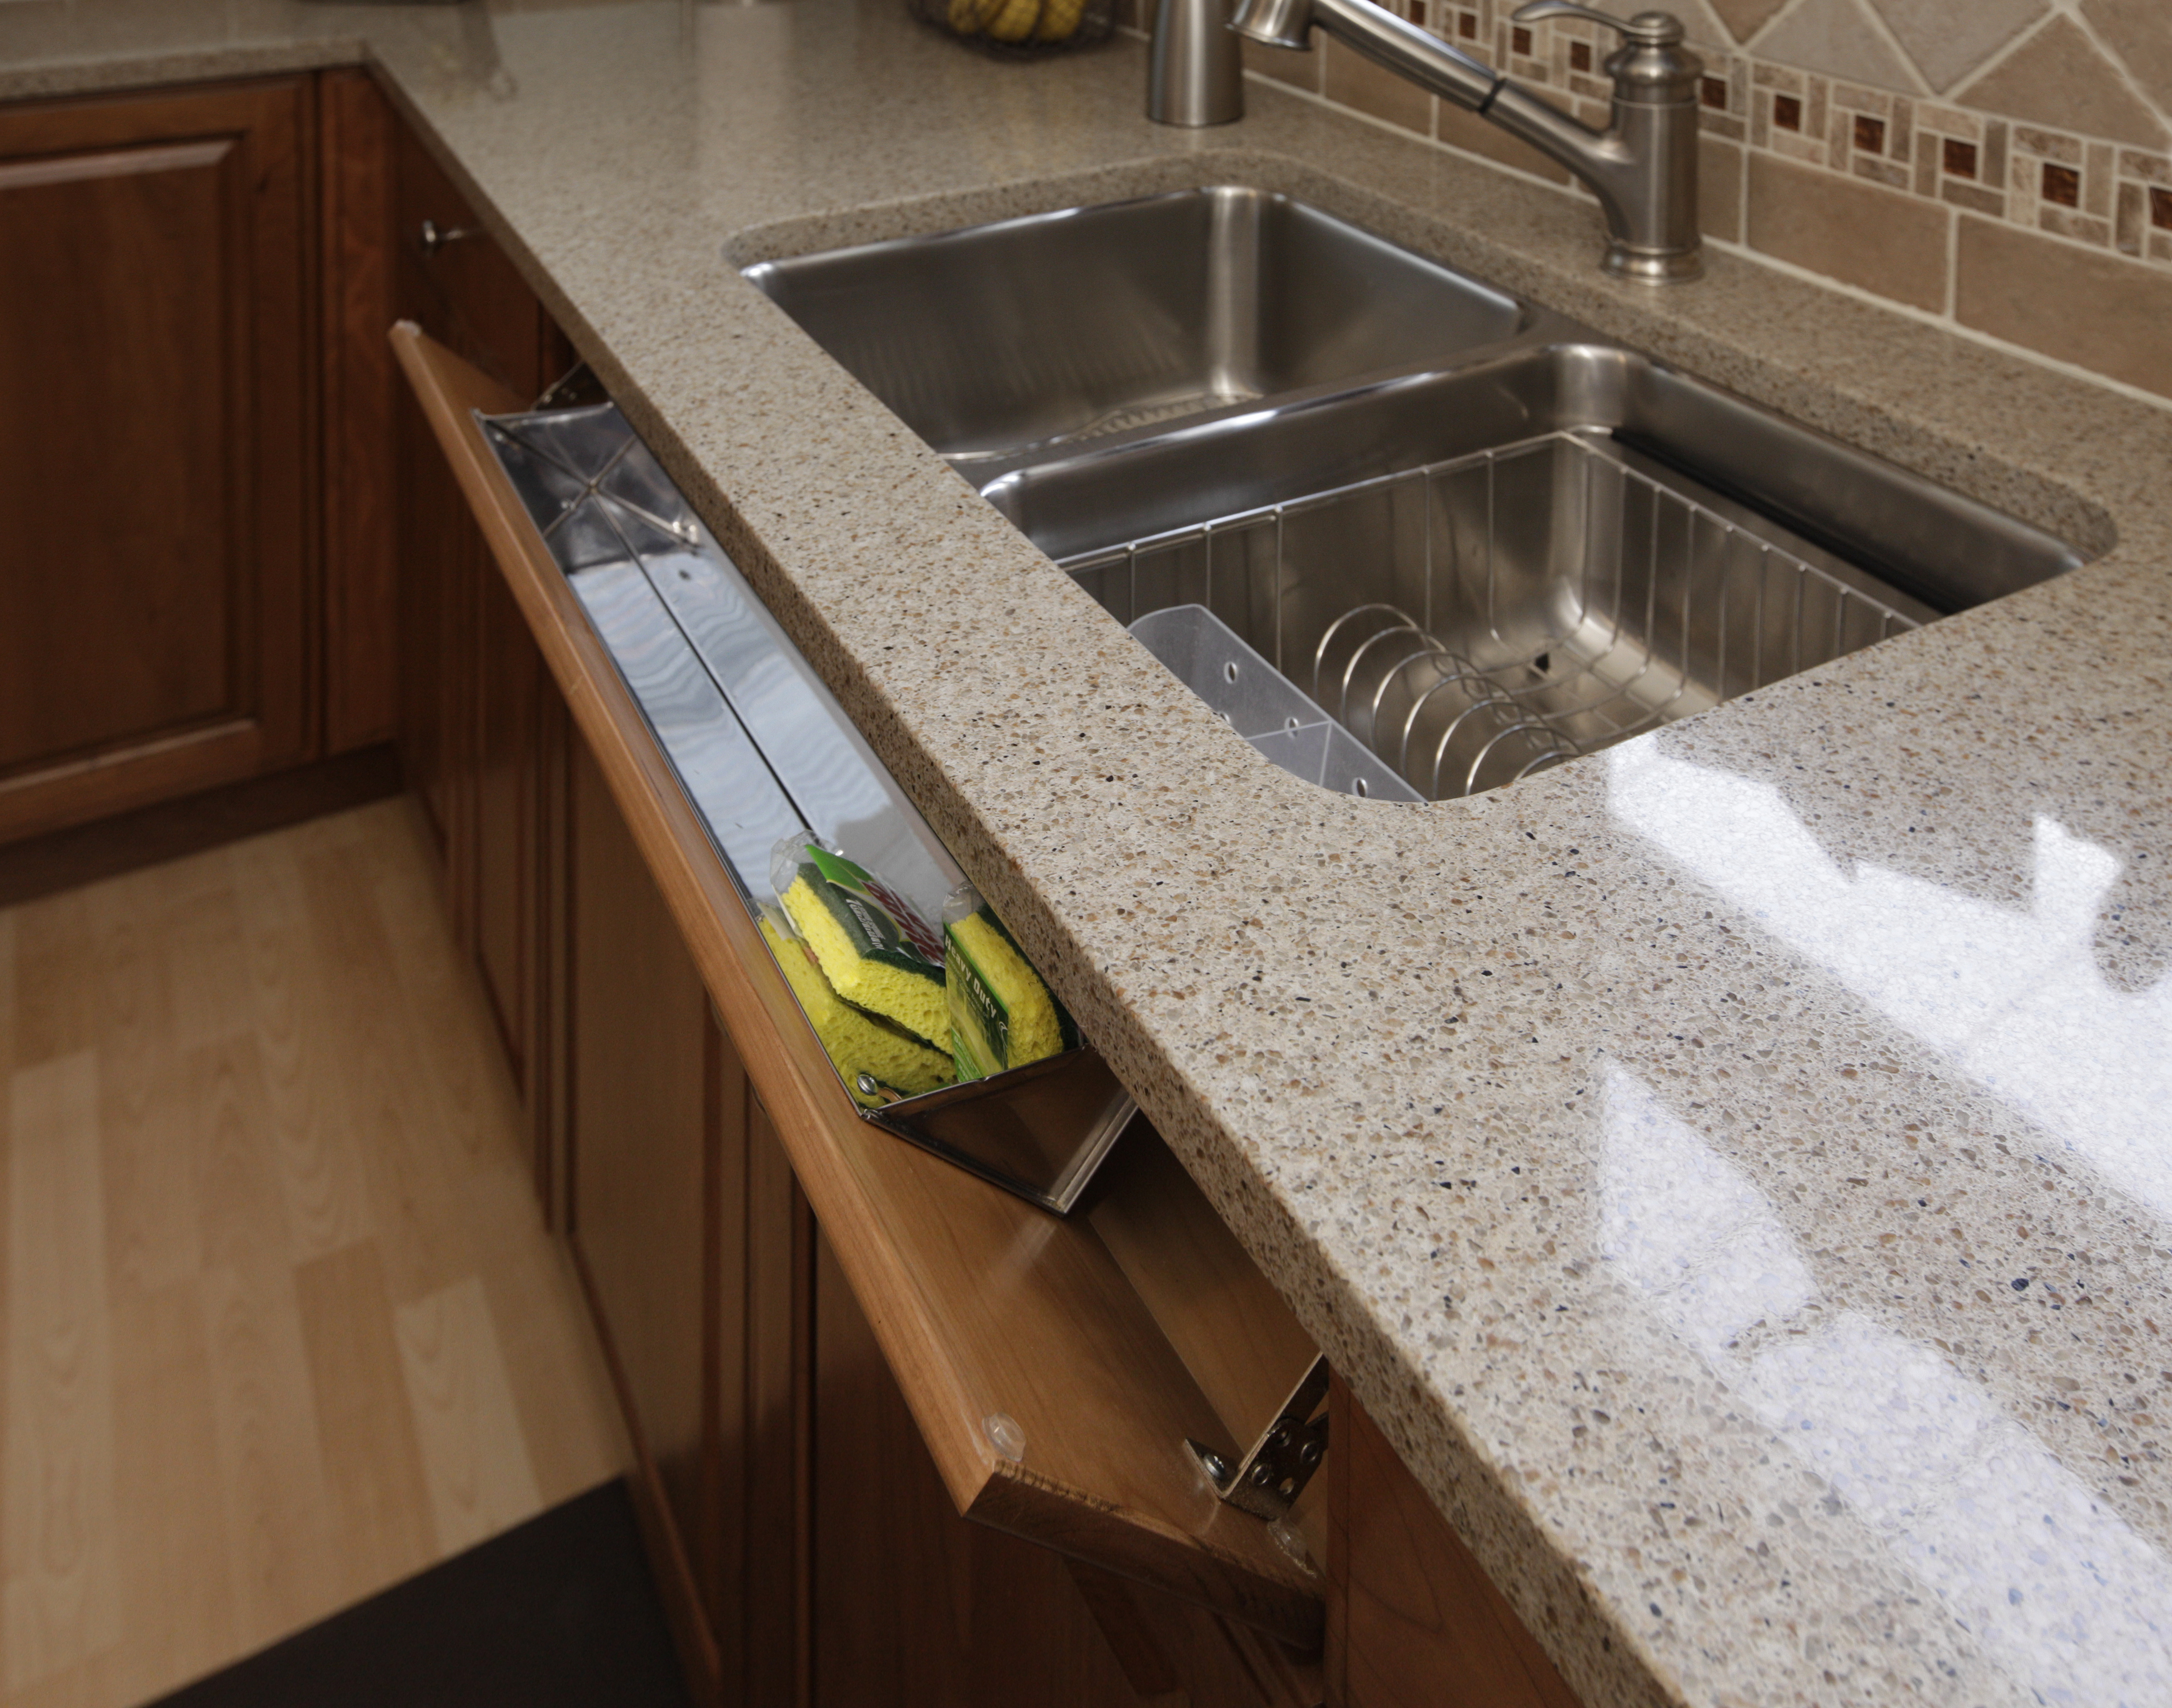 small kitchen elmwood park kitchen remodeling chicago OVERVIEW